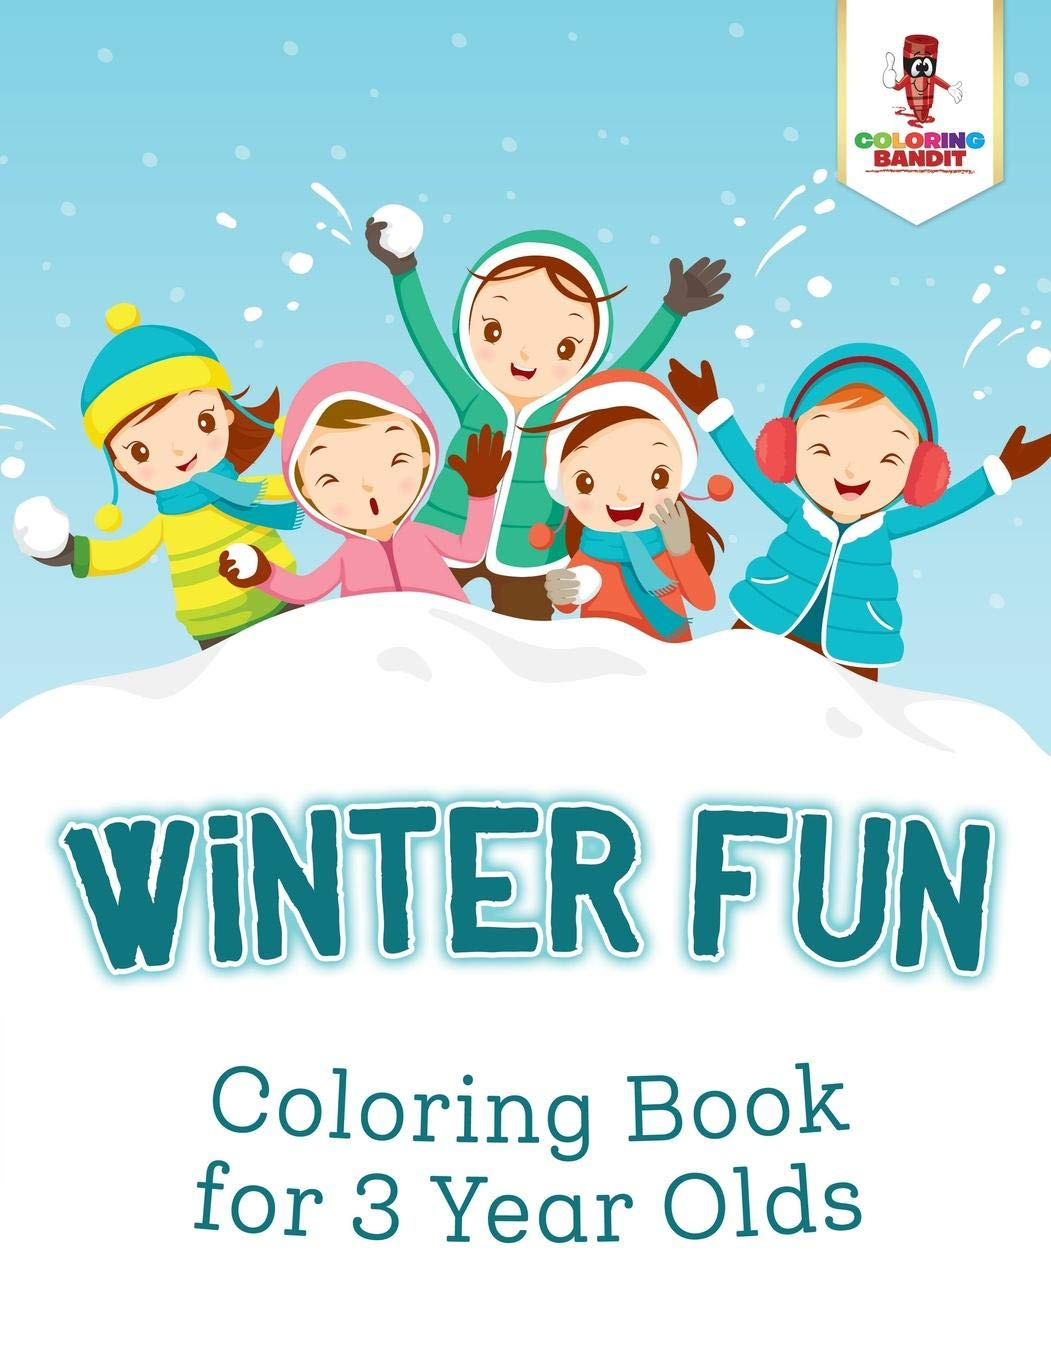 Coloring Books For 3 Year Olds